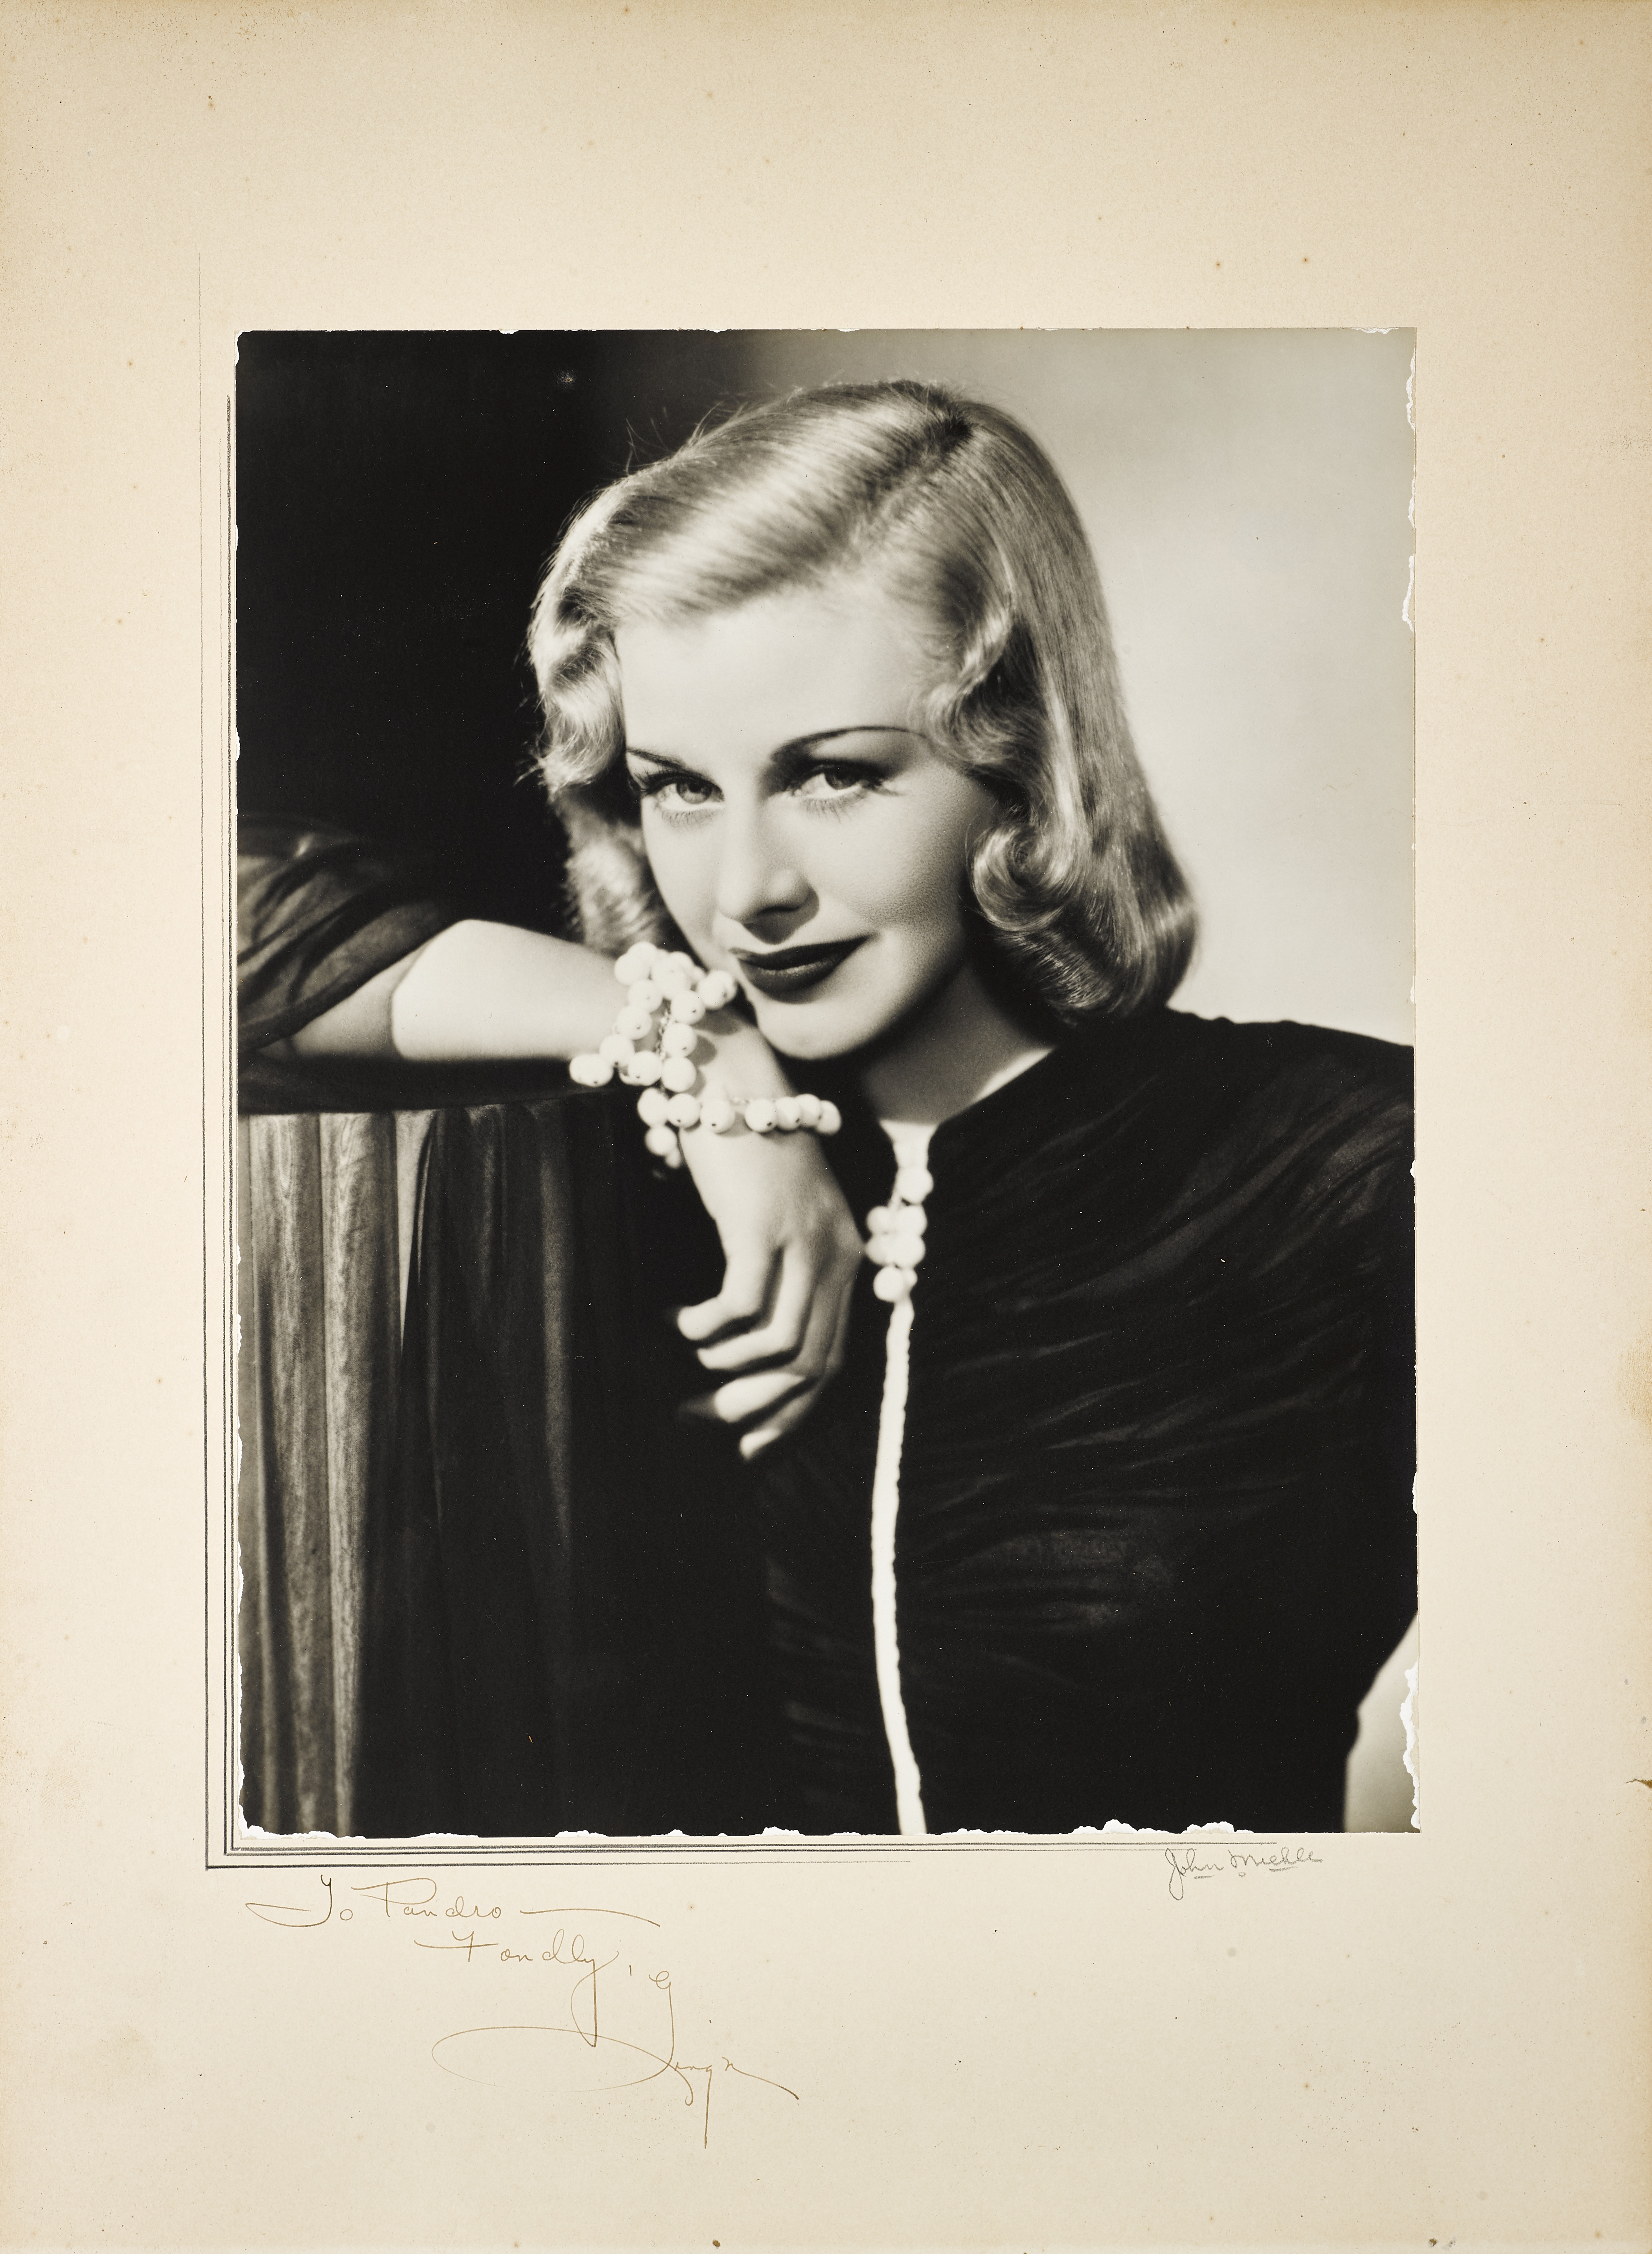 A Ginger Rogers signed photo to Pandro Berman